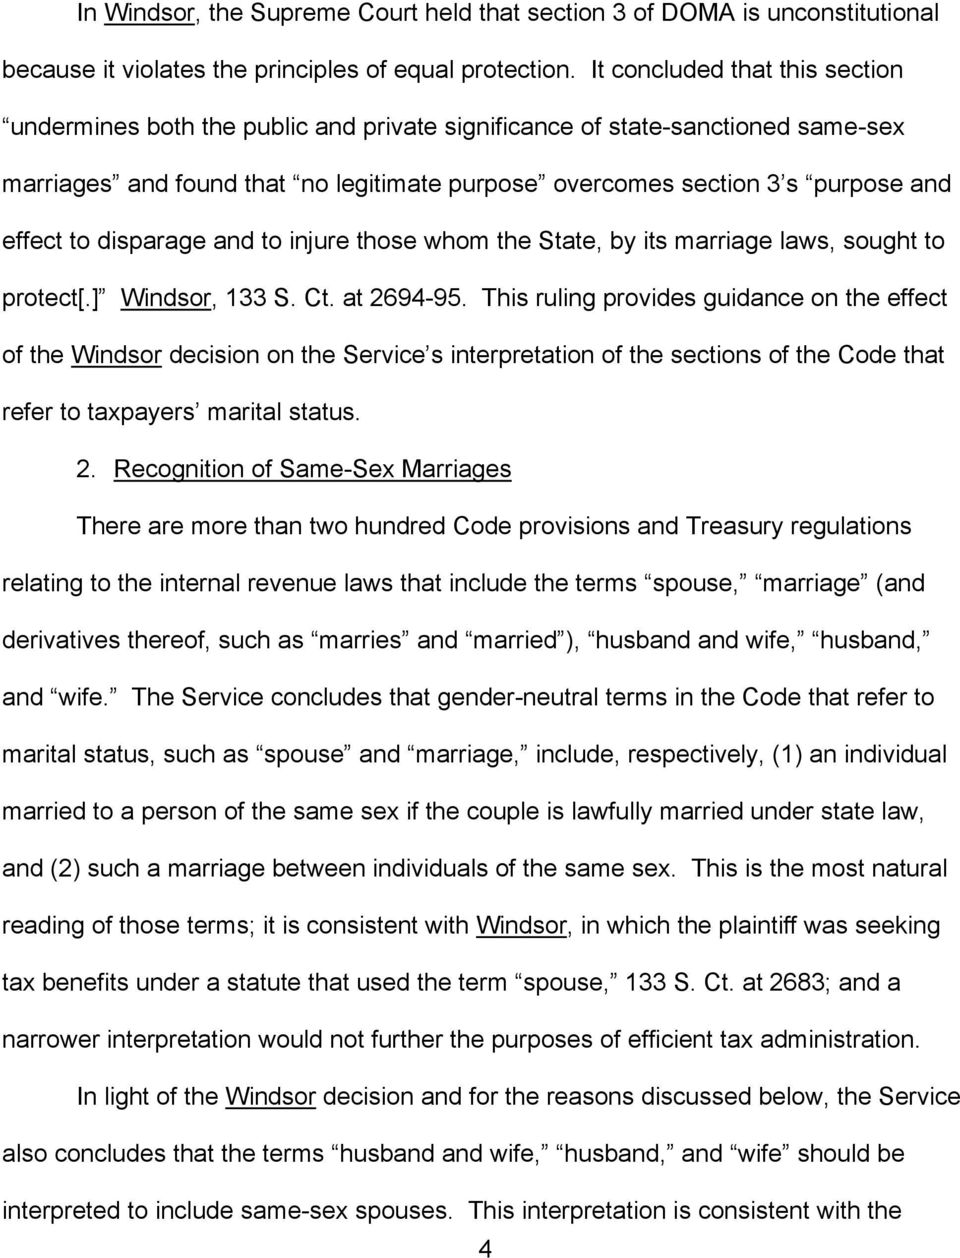 to disparage and to injure those whom the State, by its marriage laws, sought to protect[.] Windsor, 133 S. Ct. at 2694-95.